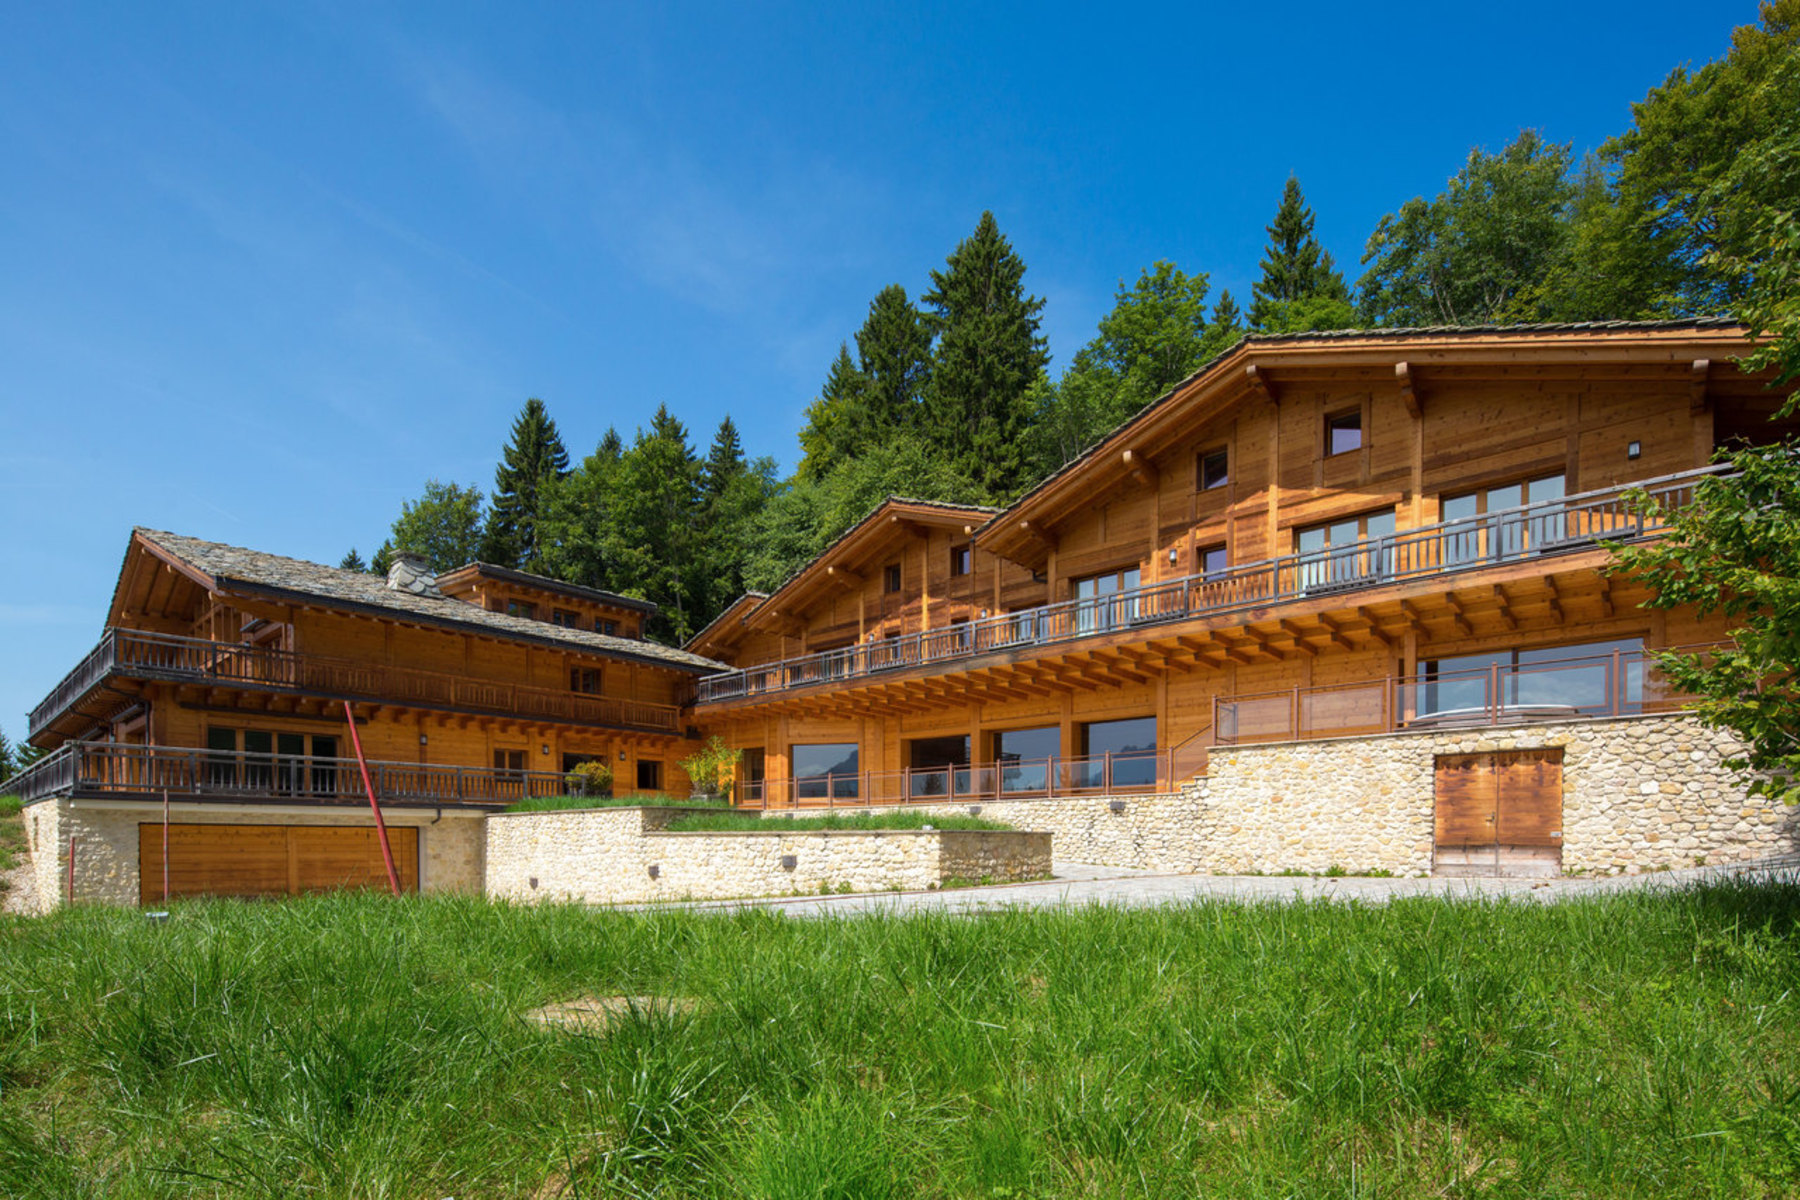 Single Family Homes for Sale at Luxury property in the heart of verdant grounds stretching over 6.5 hectares Villars-sur-Ollon Villars-Sur-Ollon, Vaud 1884 Switzerland